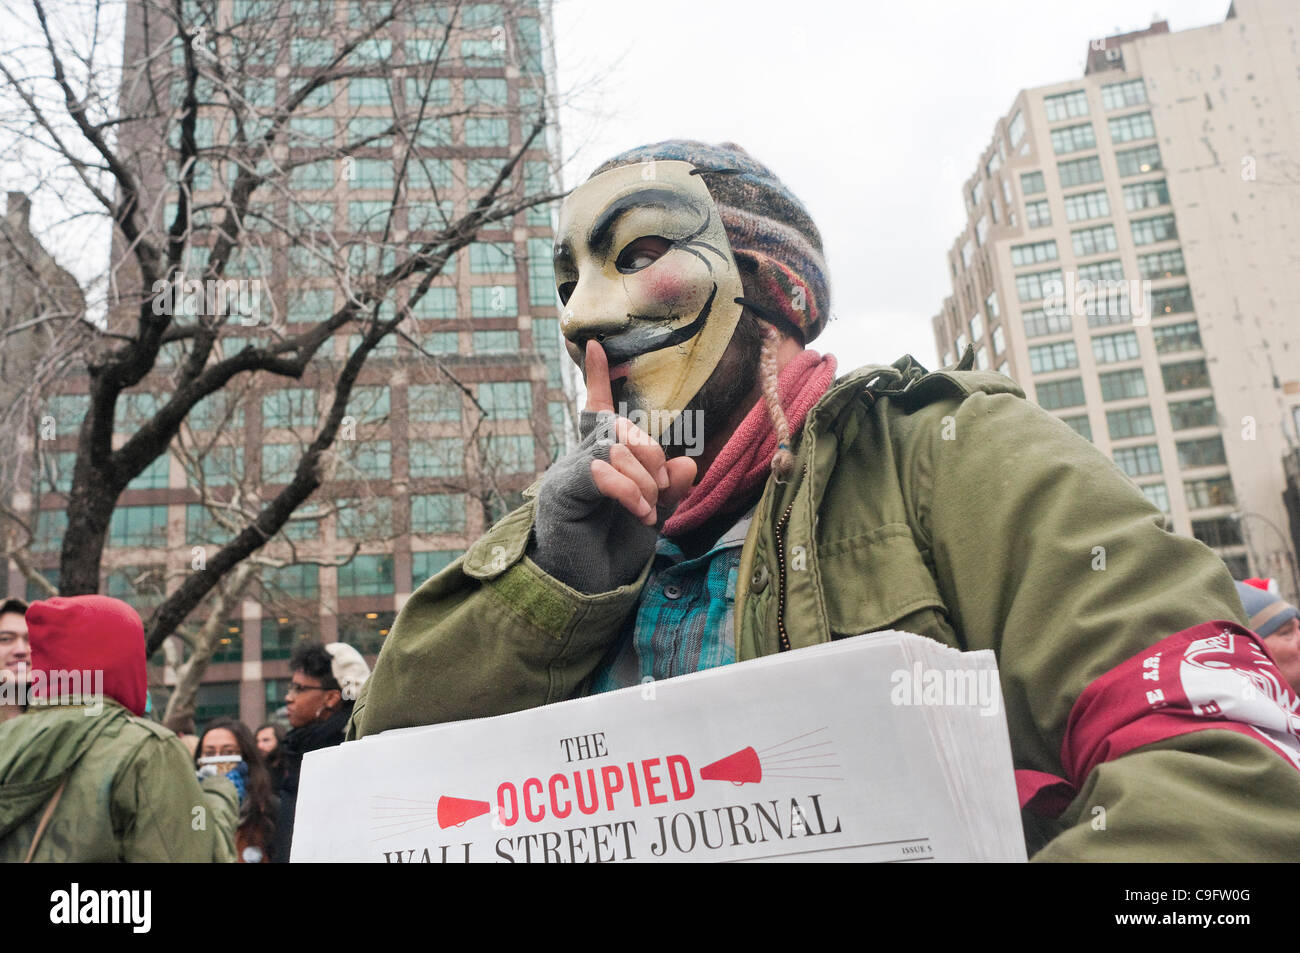 New York, NY - December 17 - Occupy Wall street protesters launched Occupy 2.0, marking their three month anniversary - Stock Image